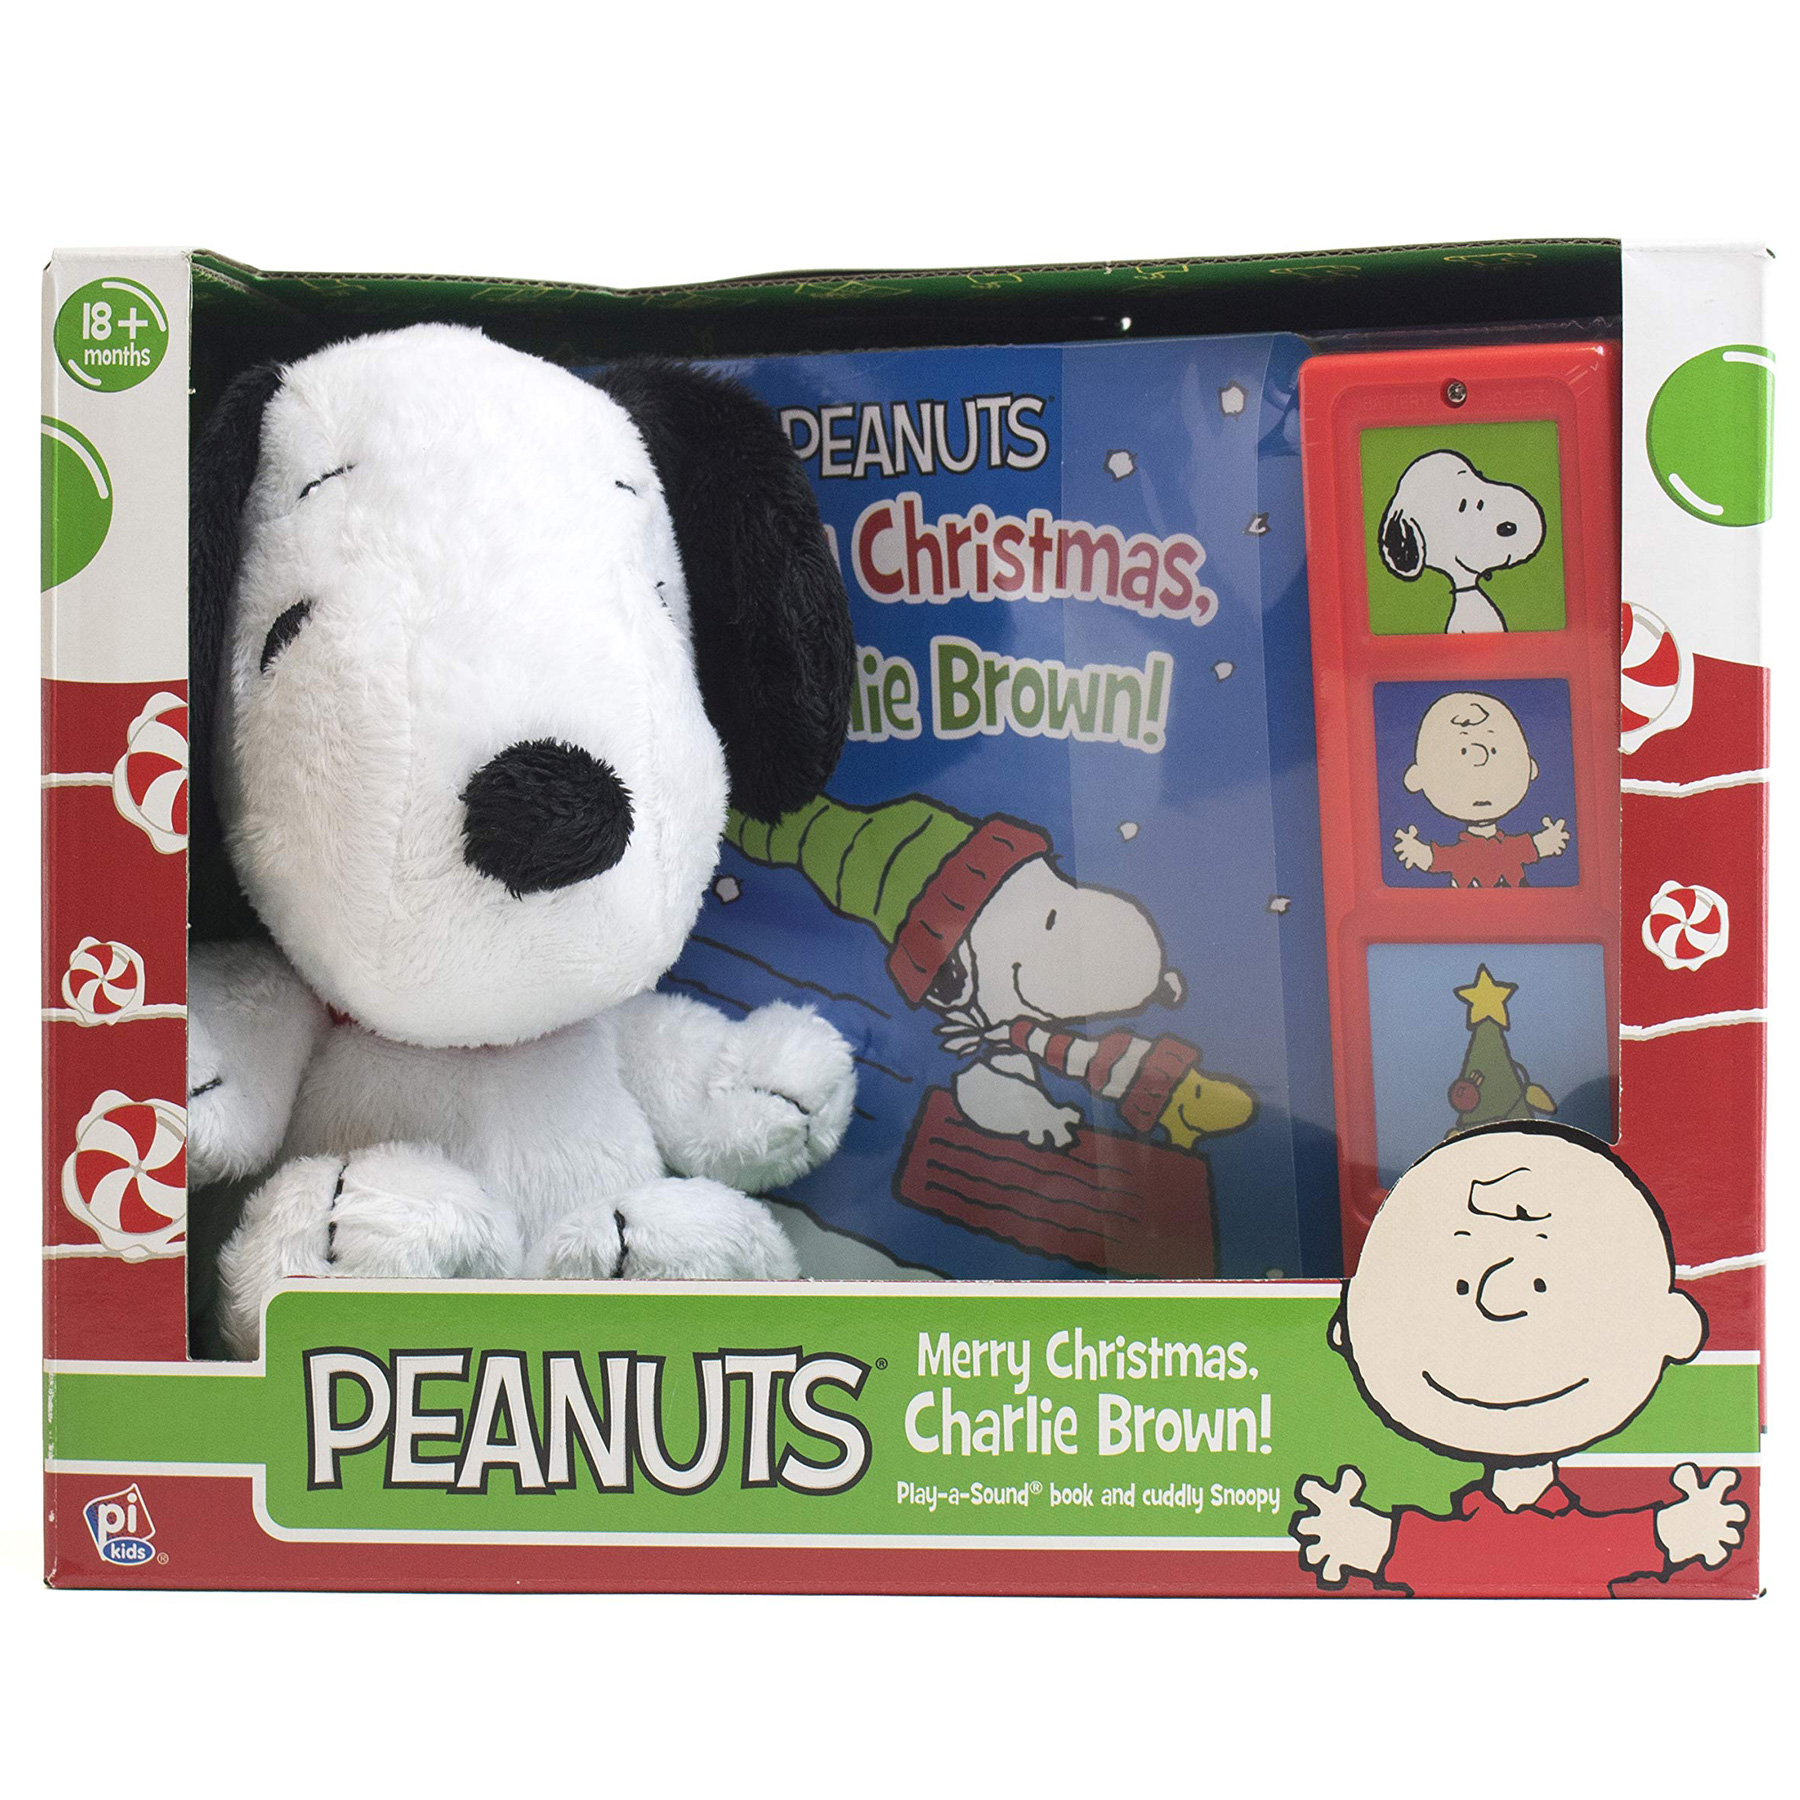 Snoopy Merry Christmas Images.79 Off Peanuts Merry Christmas Charlie Brown W Snoopy Plush